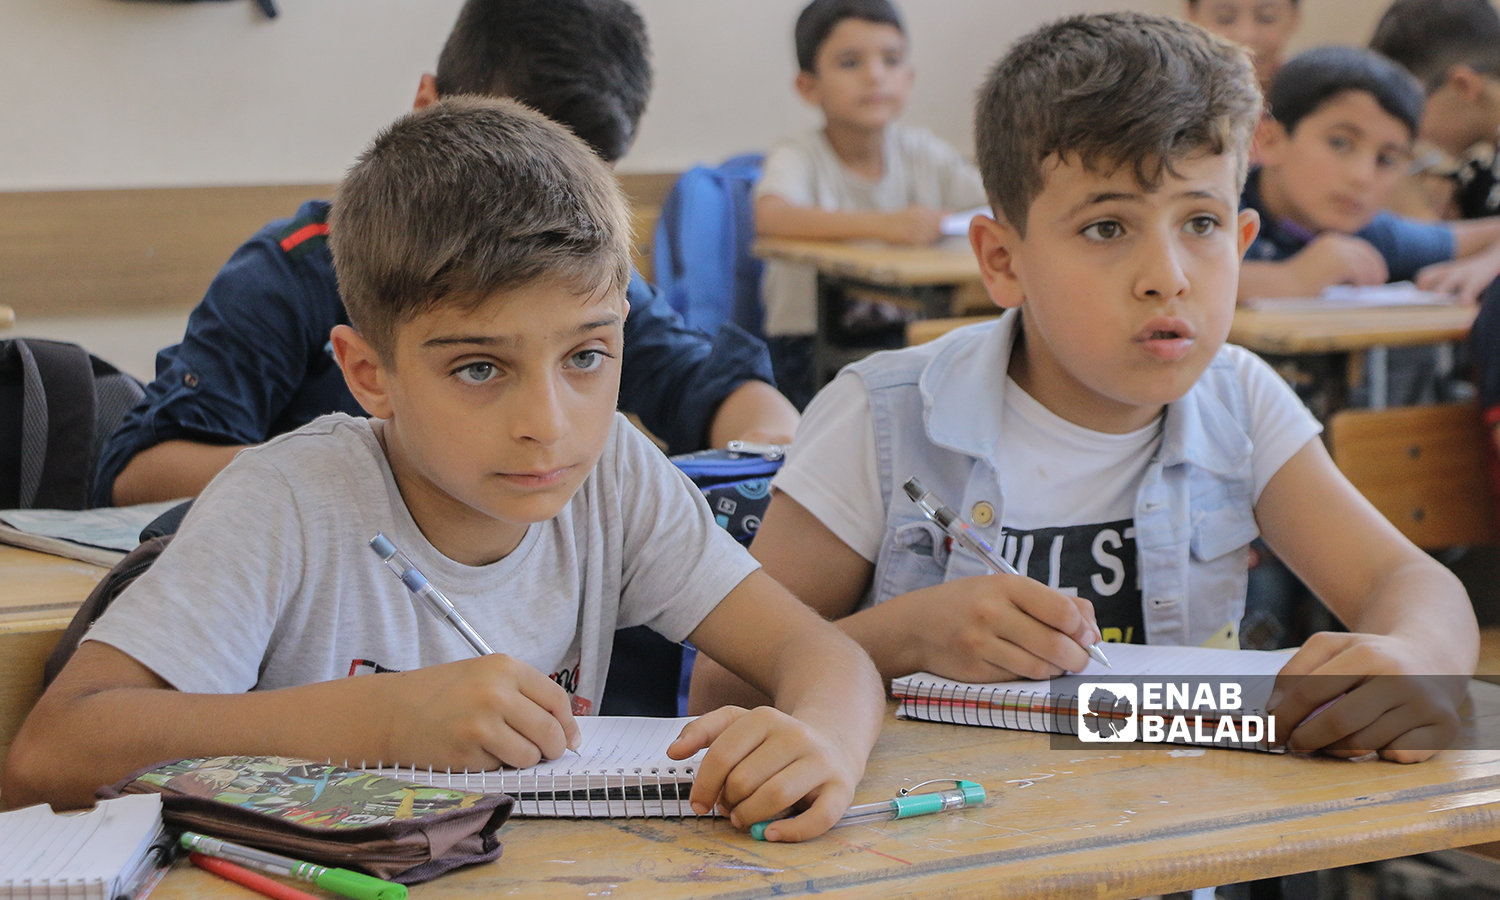 Primary school pupils sitting at their desks in Azaz, northern countryside of Aleppo - 22 September 2021 (Enab Baladi-Walid Othman)